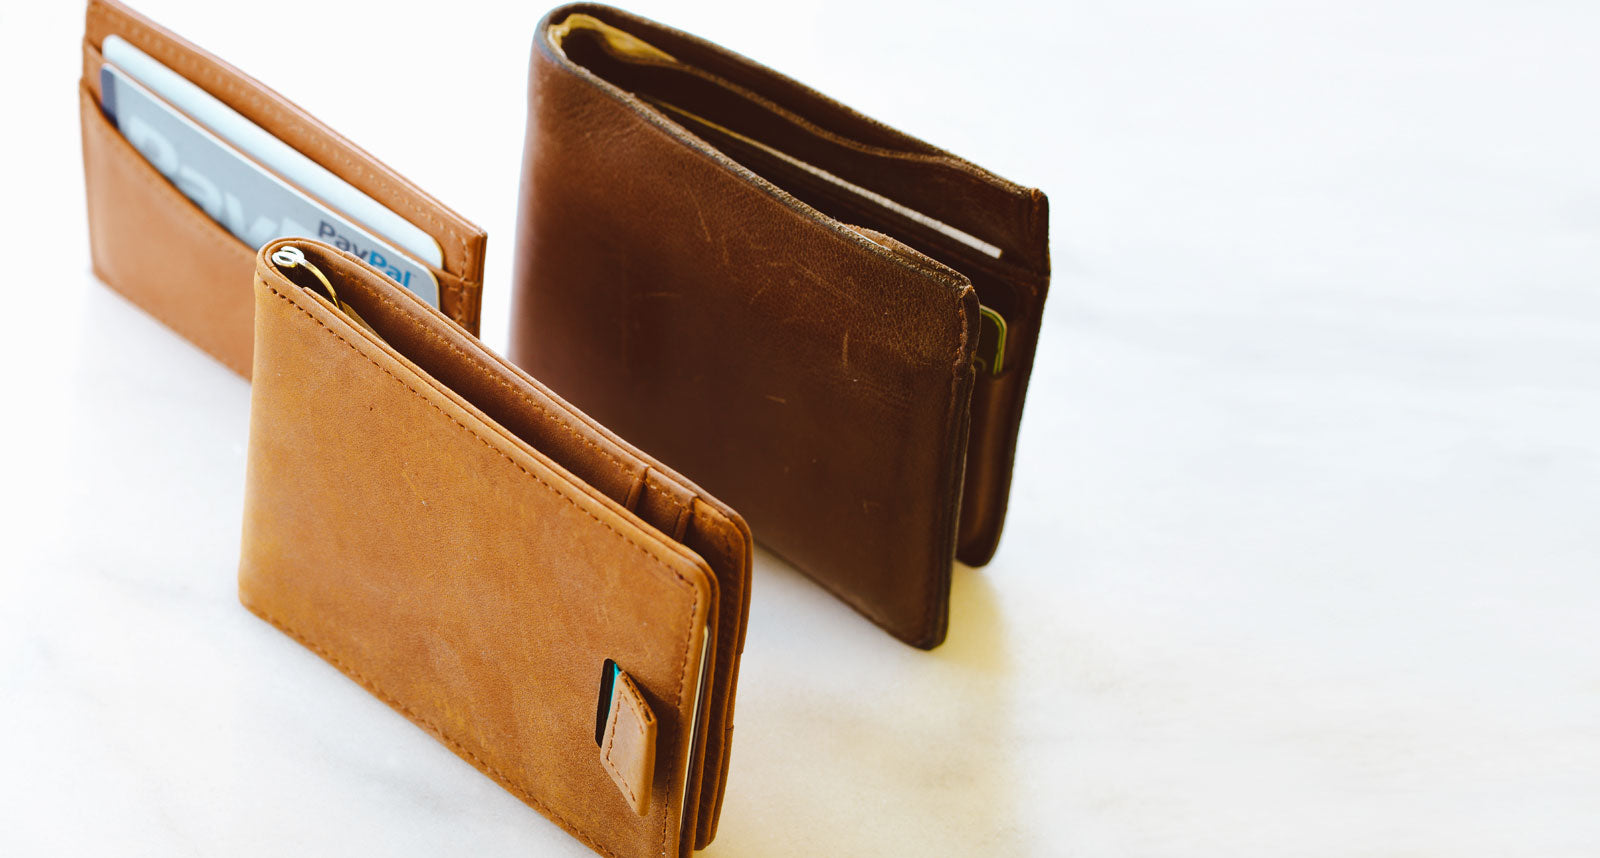 6 Simple Ways To Slim Your Wallet - Choose A Smaller Wallet